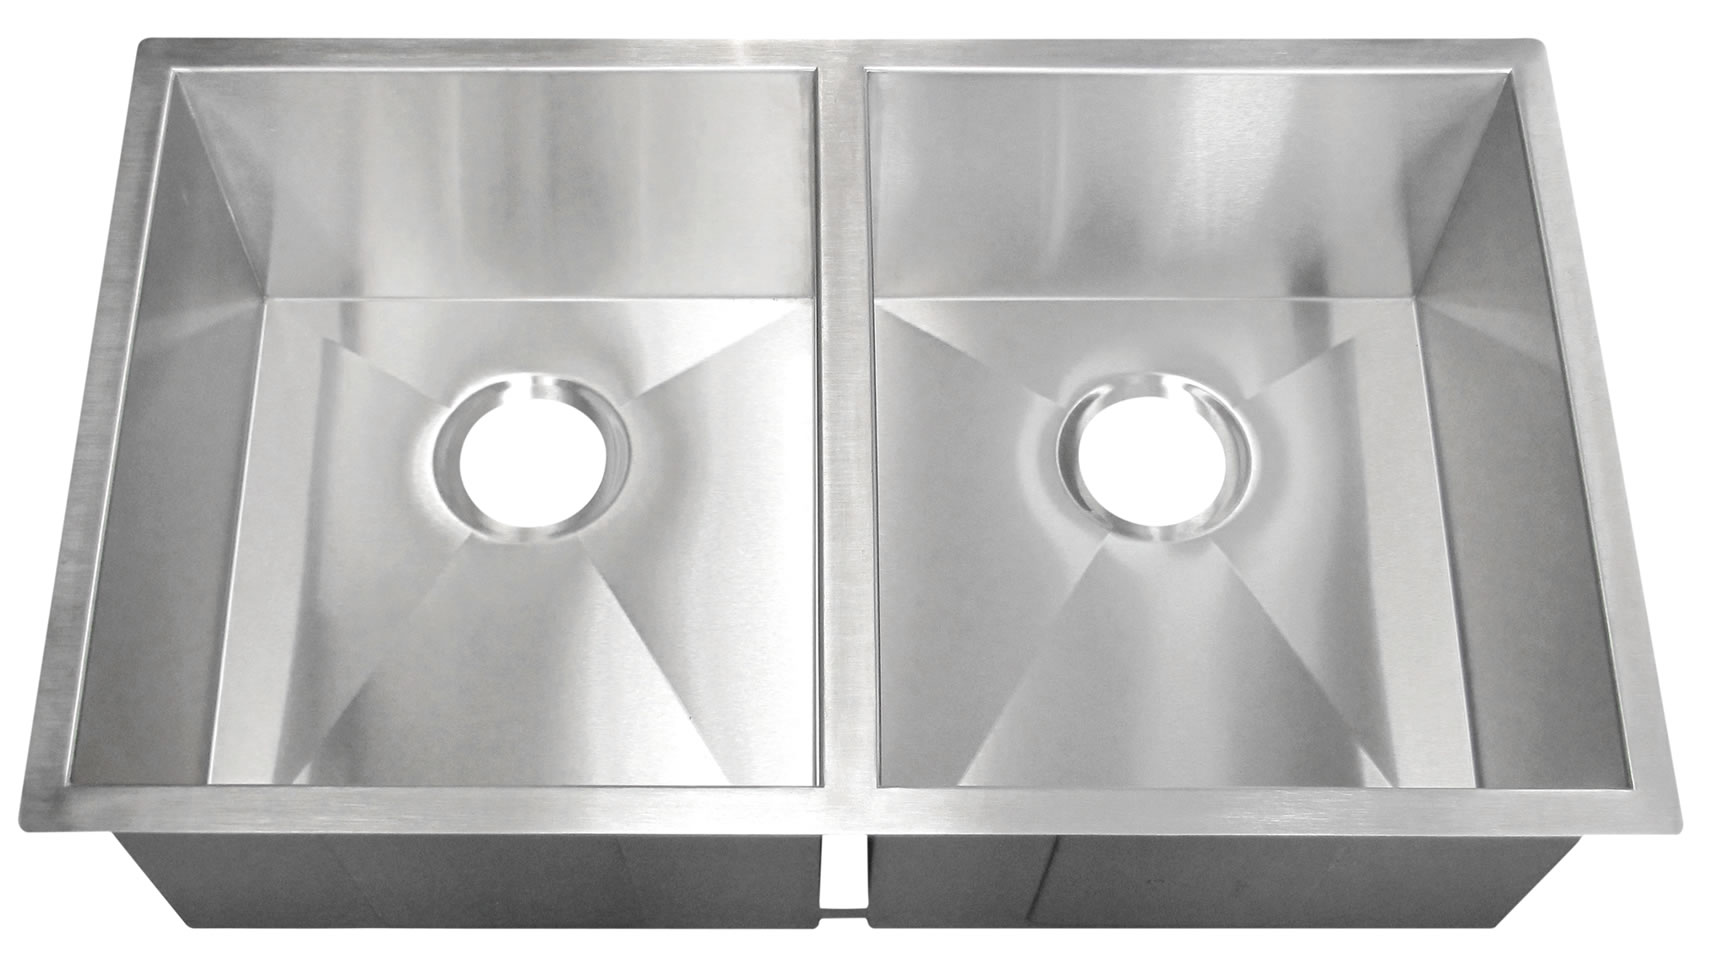 Stainless Steel Miami Double Bowl 90 Degree Sink - Aggranite Sinks